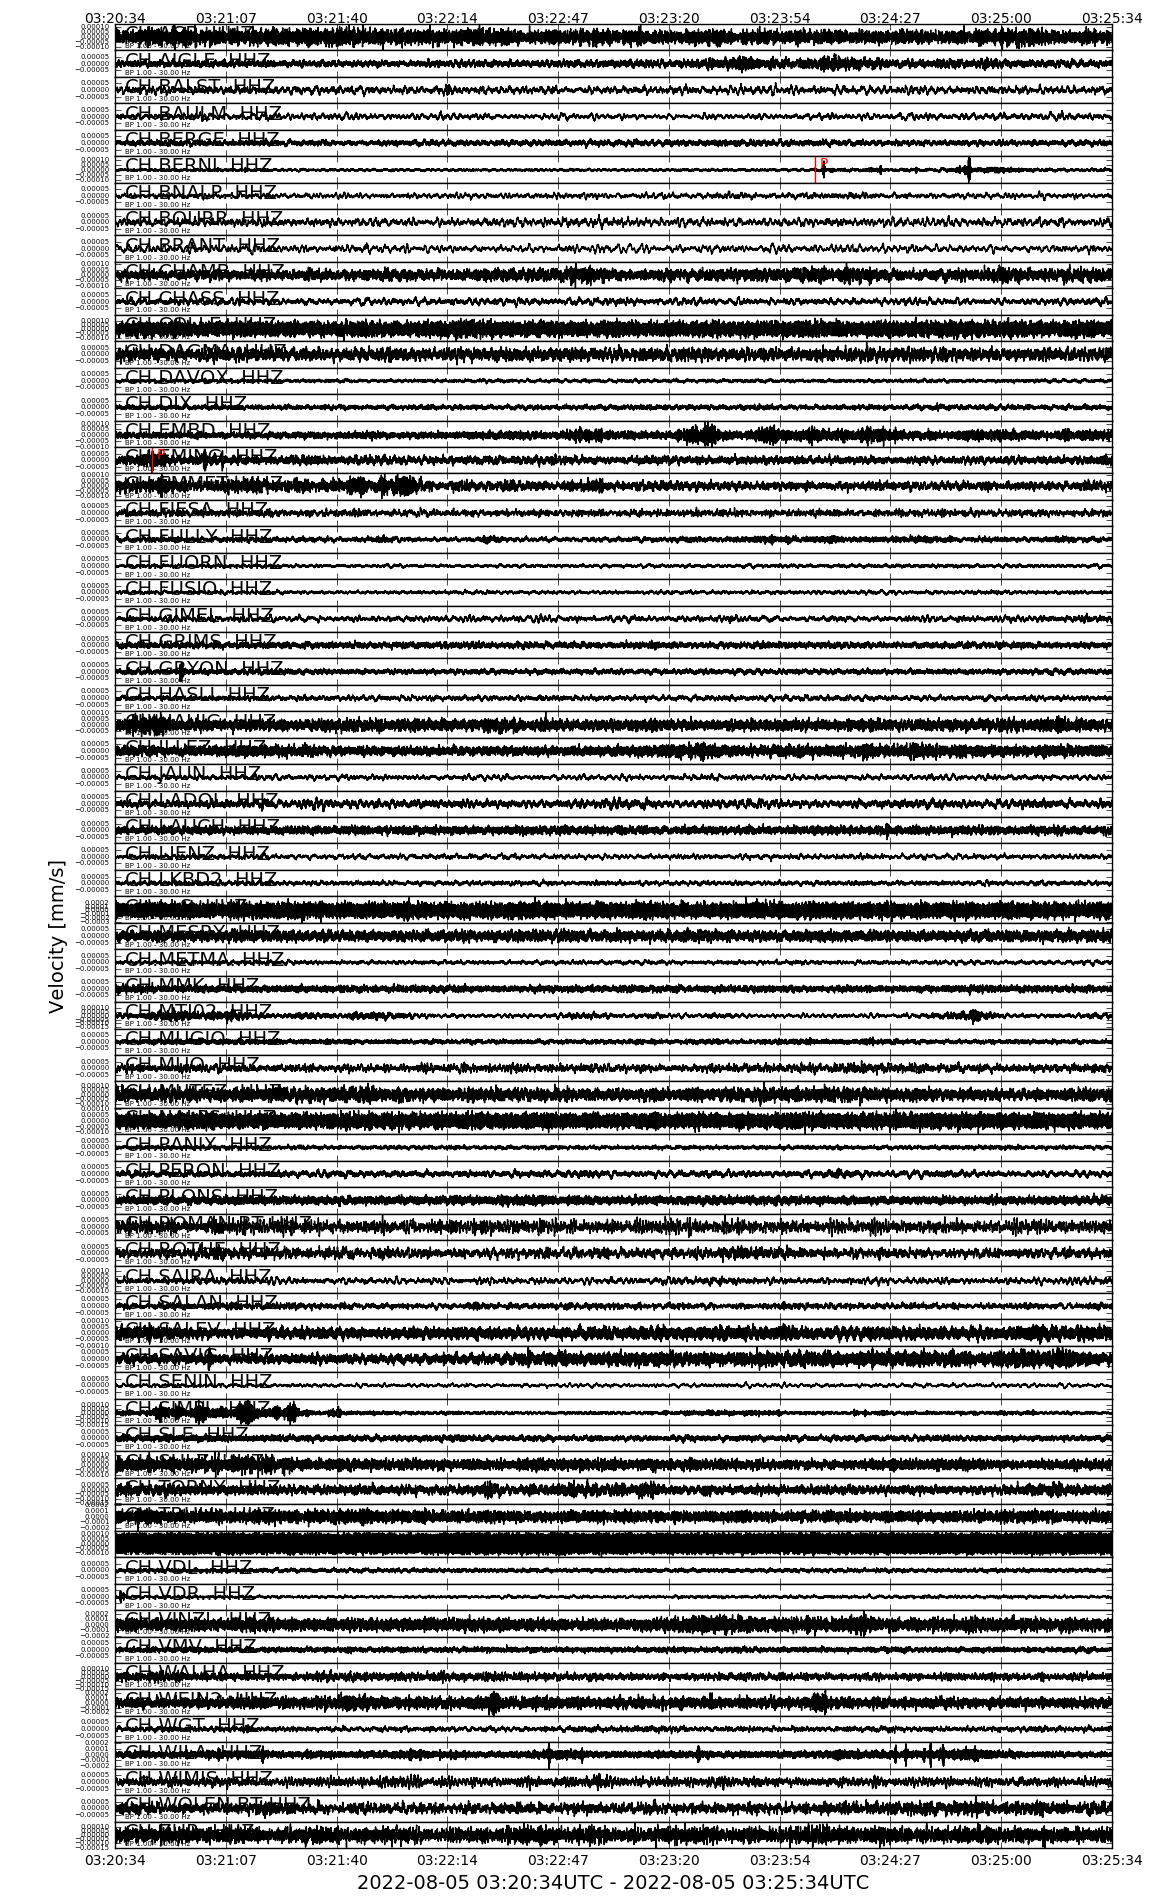 the last 5 minutes of waveforms recorded across Switzerland